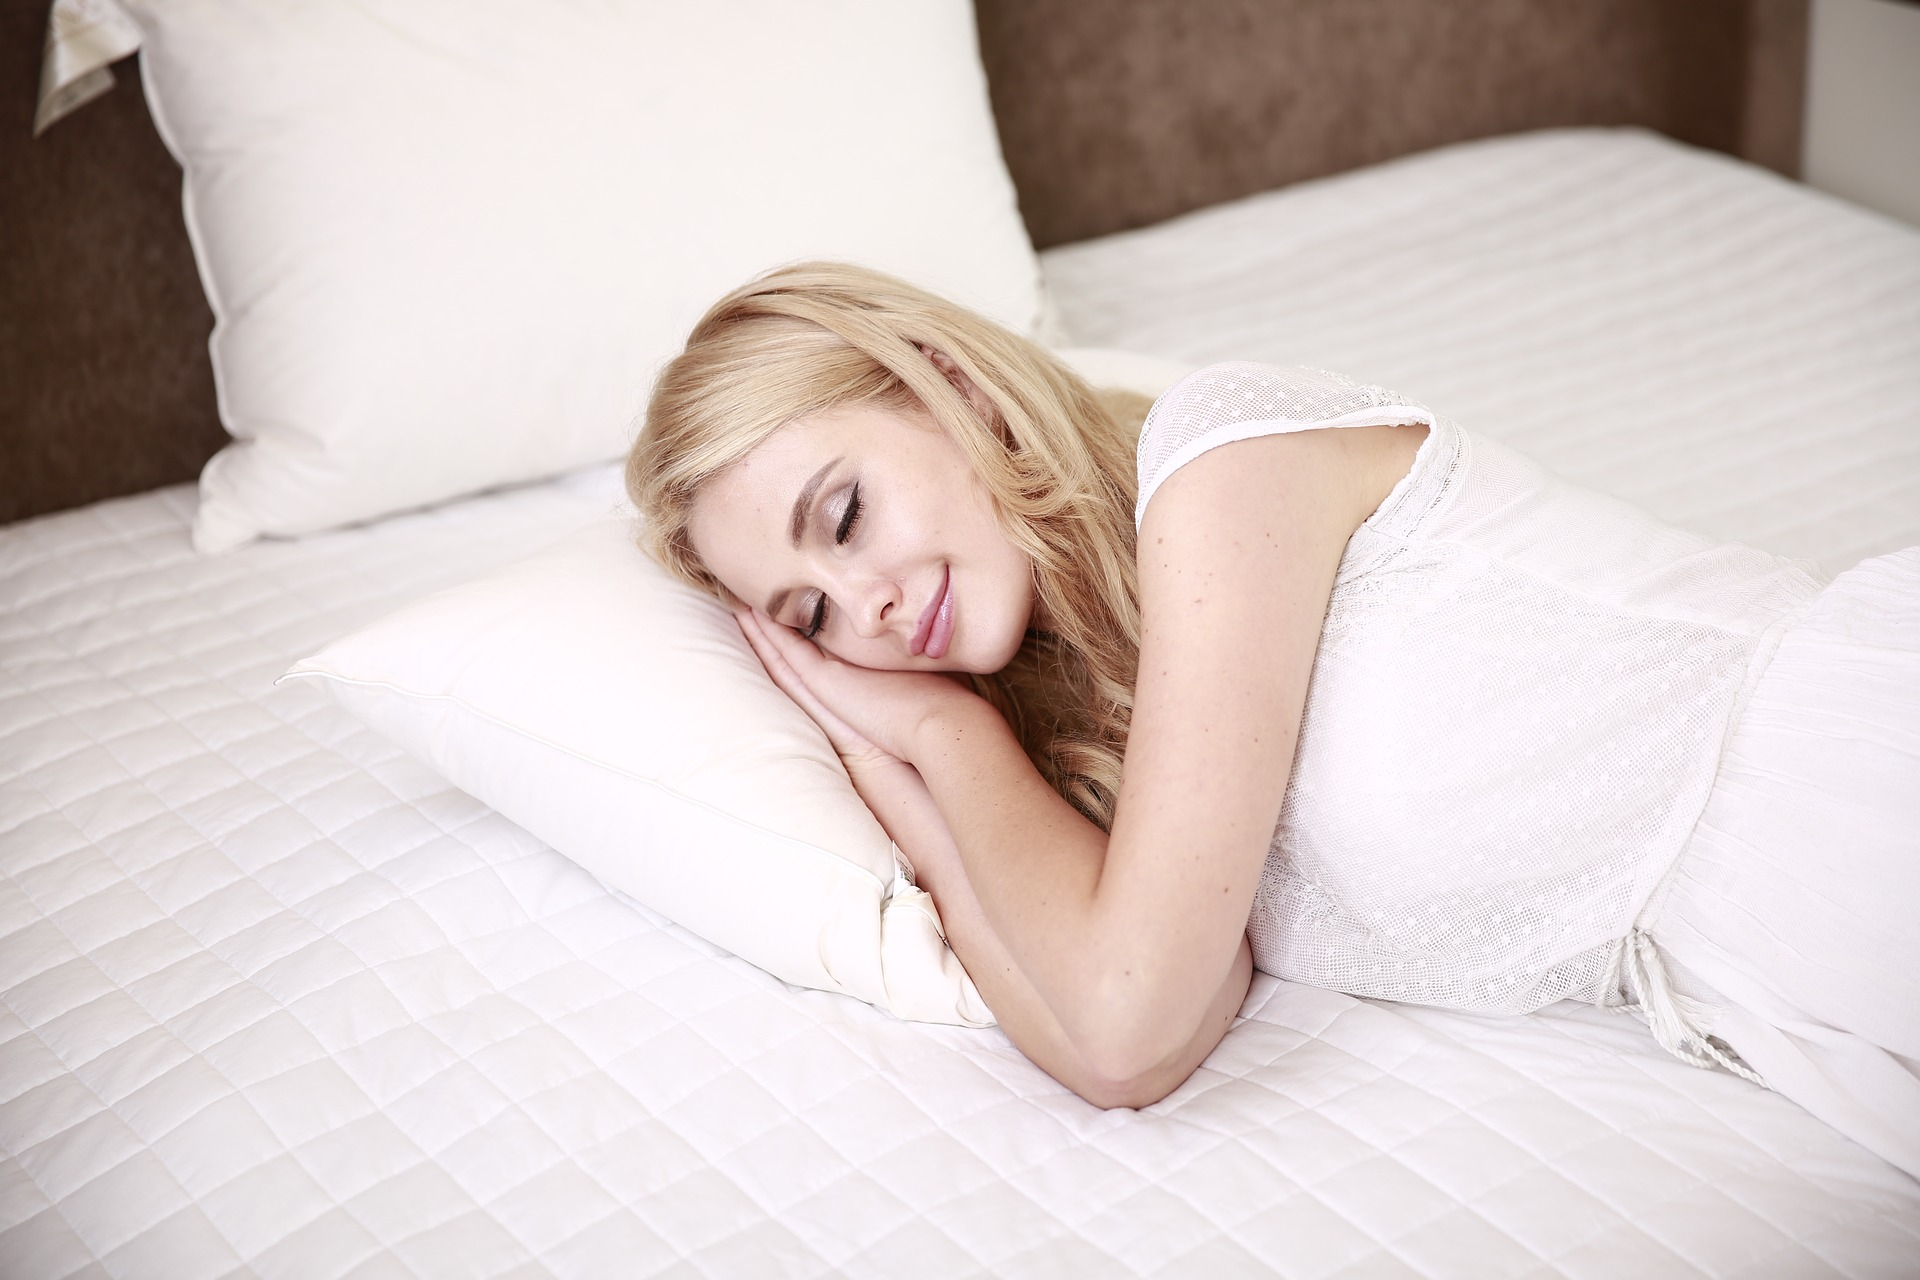 4 Incredible Ways Technology Can Help You Sleep Better